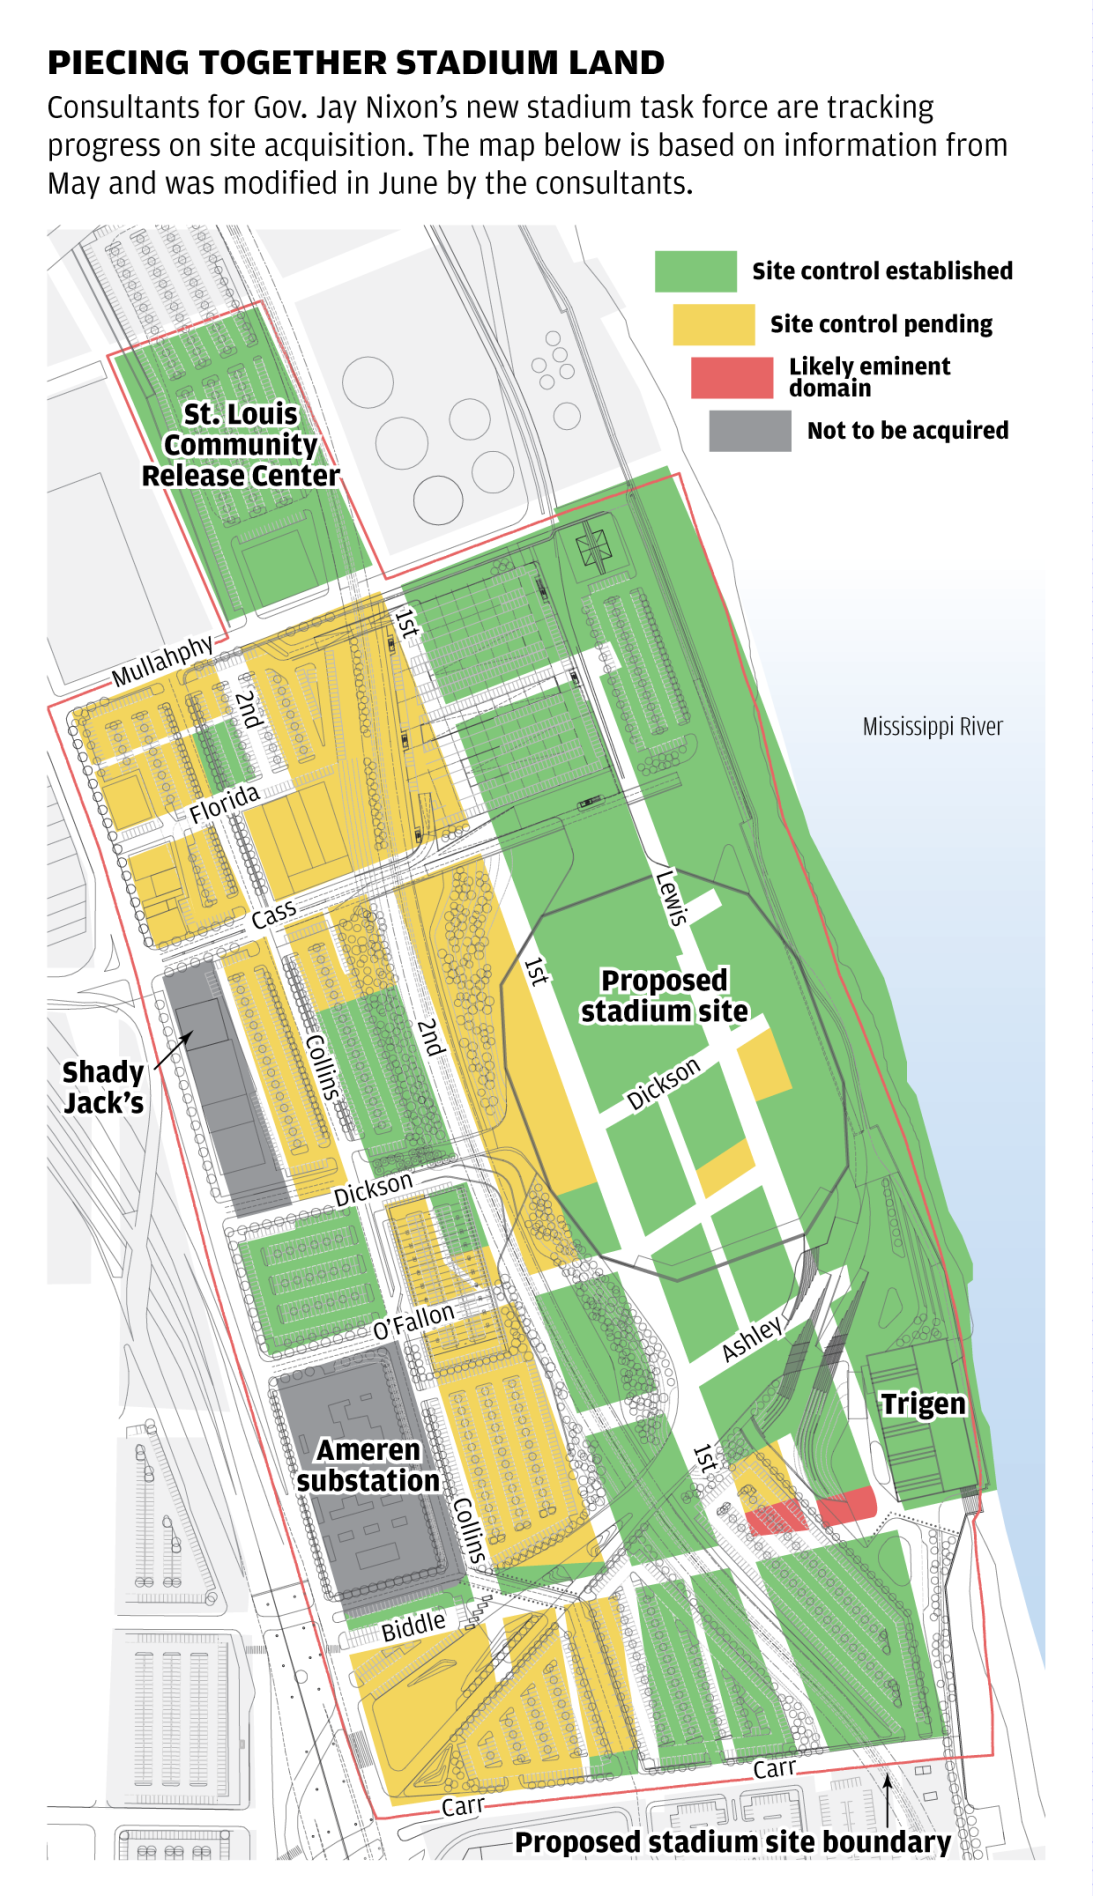 Map: Piecing together stadium land